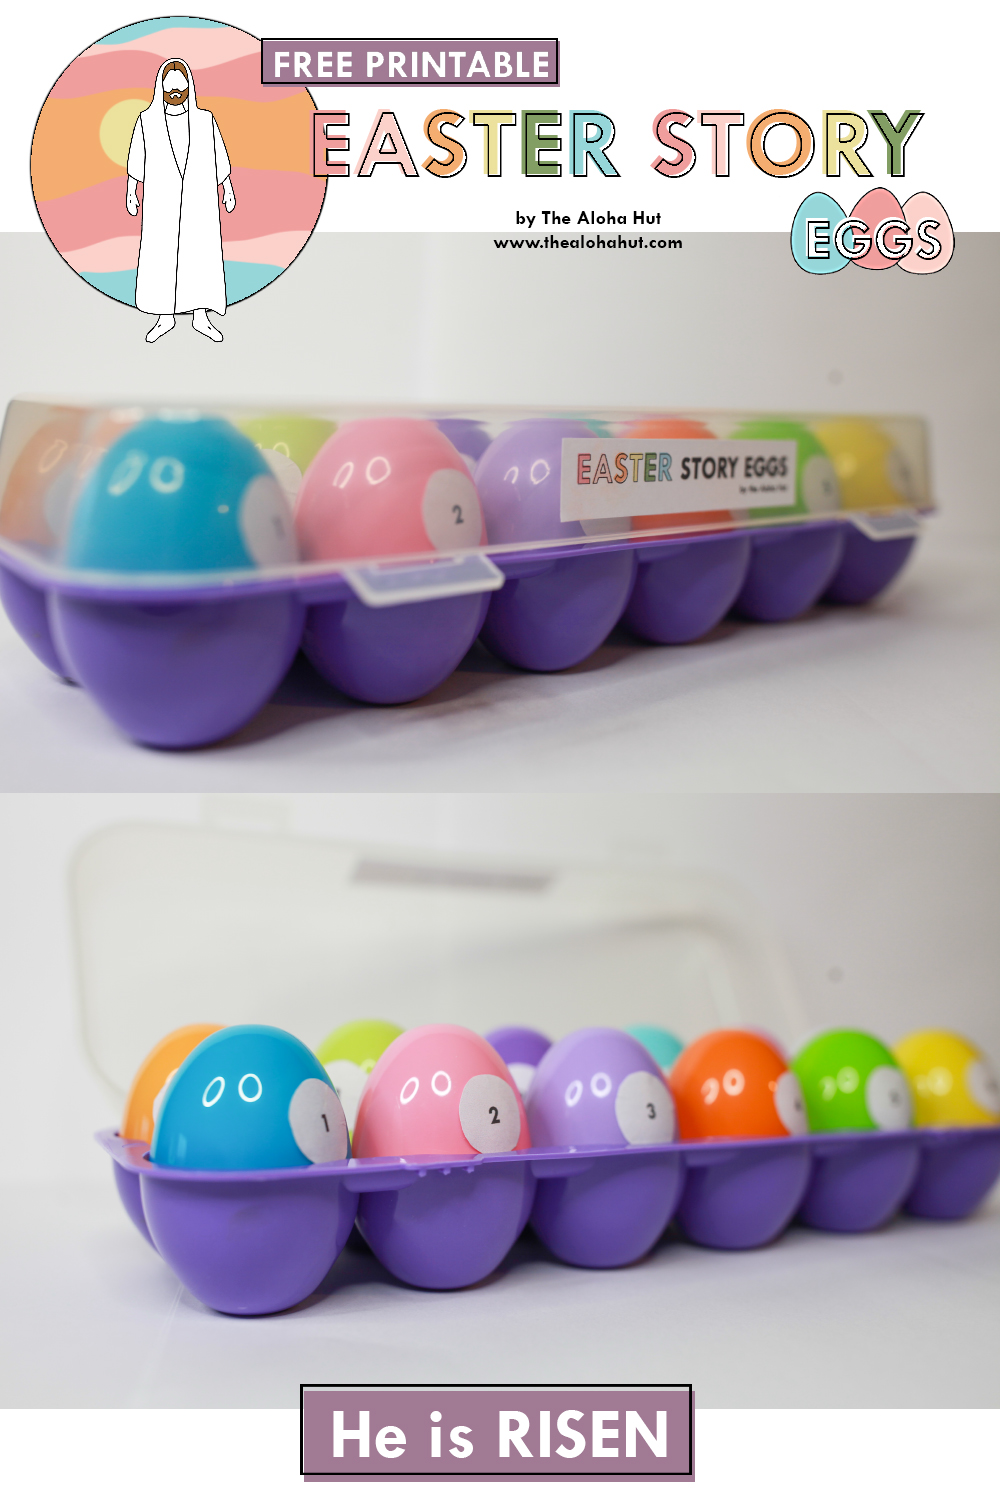 Easter Story Eggs 3 free printable by the Aloha Hut